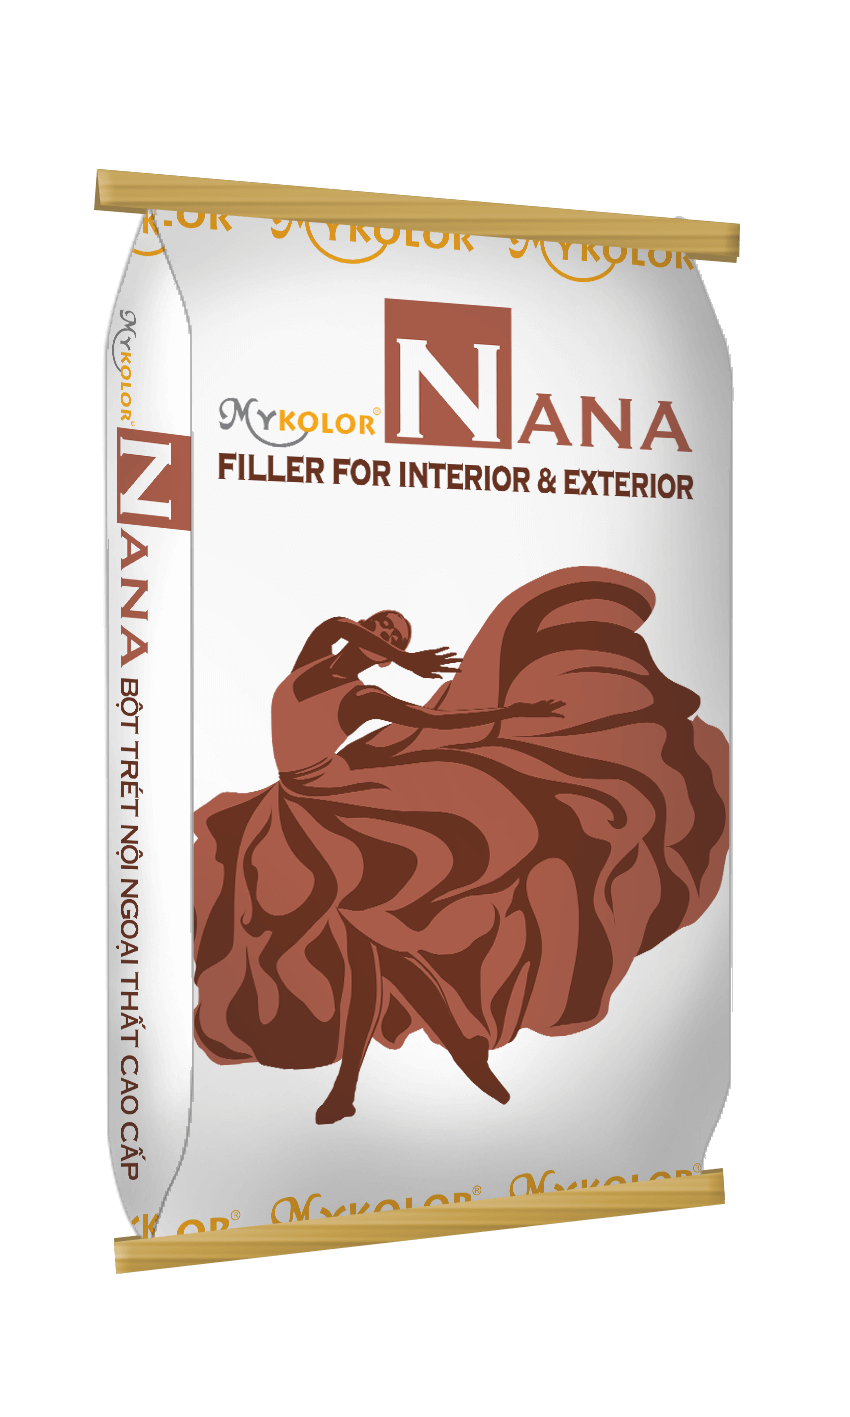 MYKOLOR NANA  FILLER  FOR INTERIOR & EXTERIOR